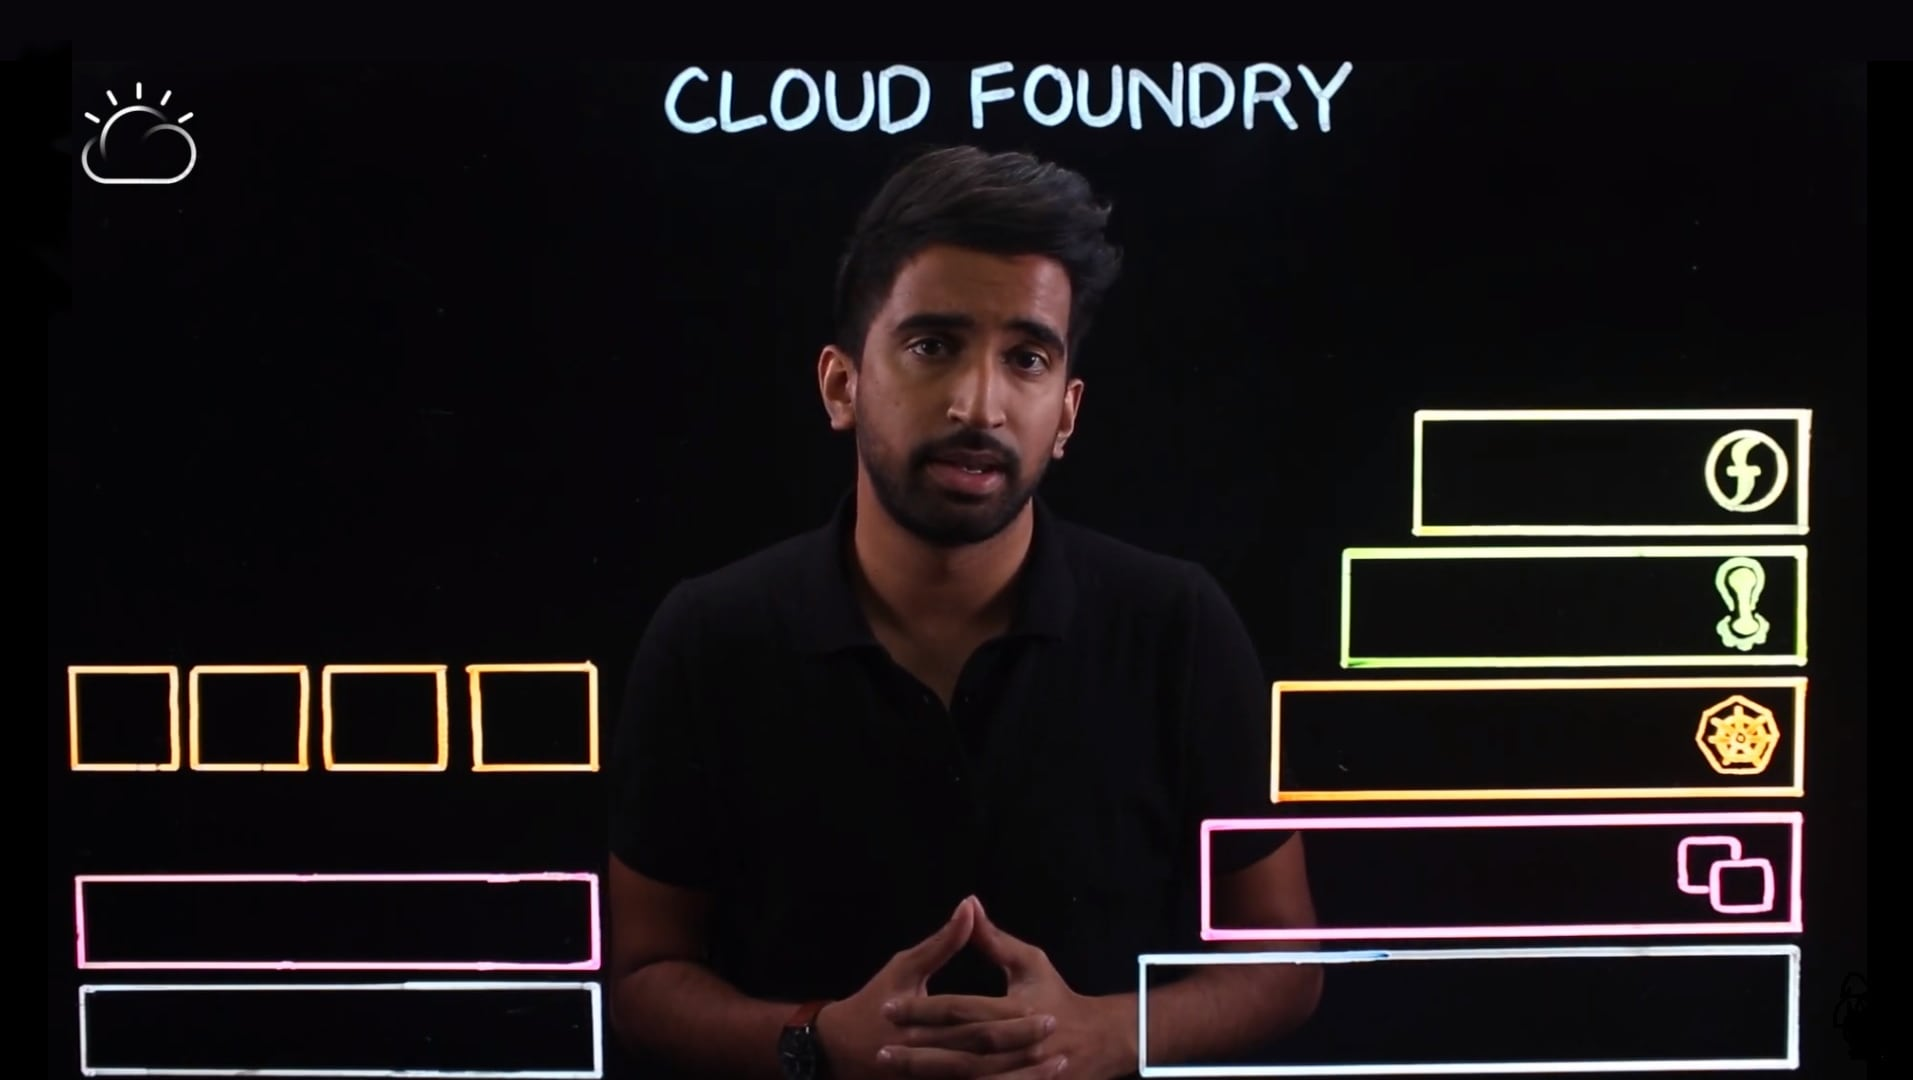 Overview of Cloud Foundry on IBM Cloud